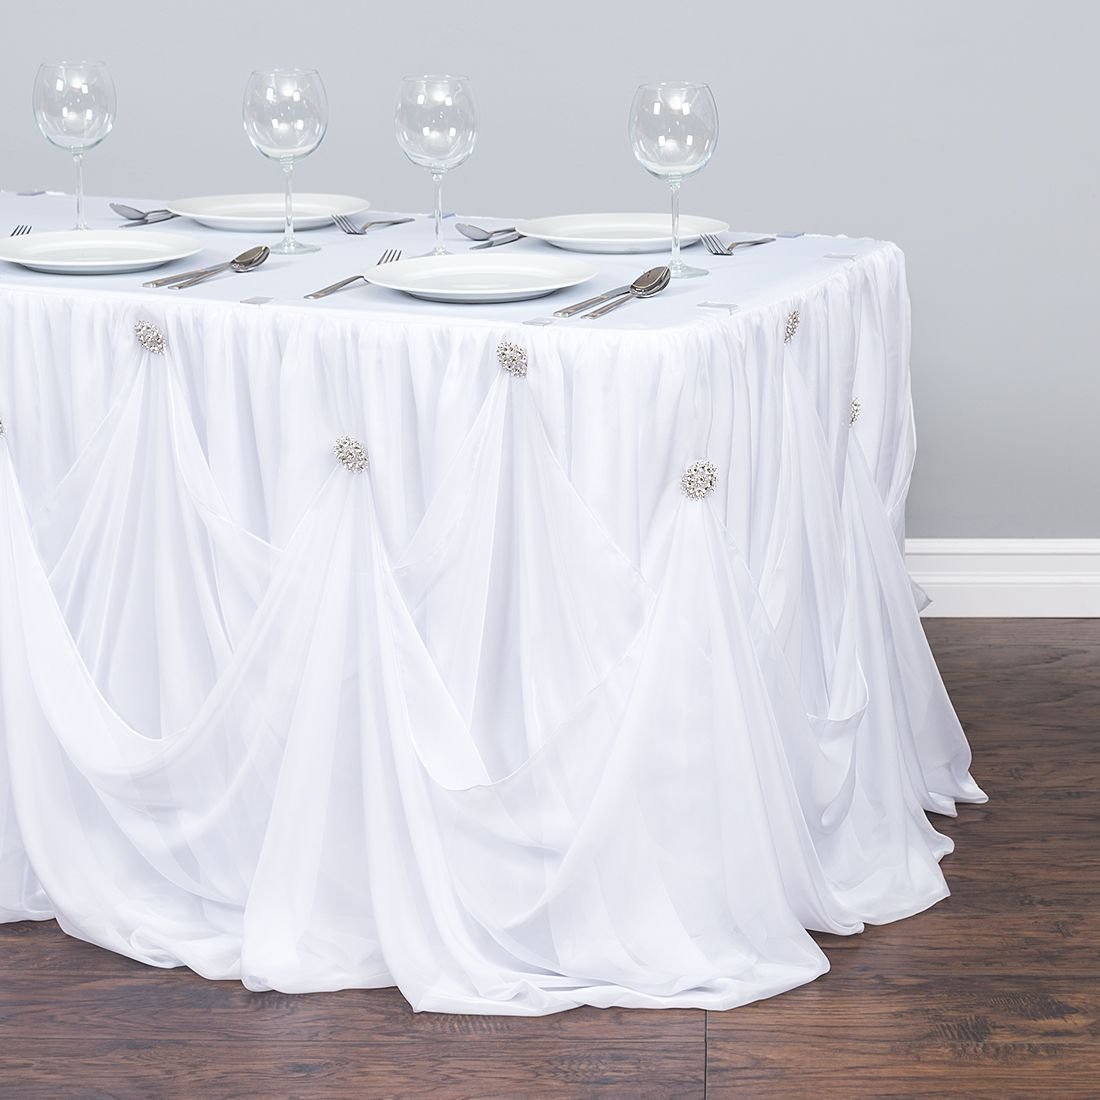 17 ft. Chiffon Rhinestone Table Skirt White